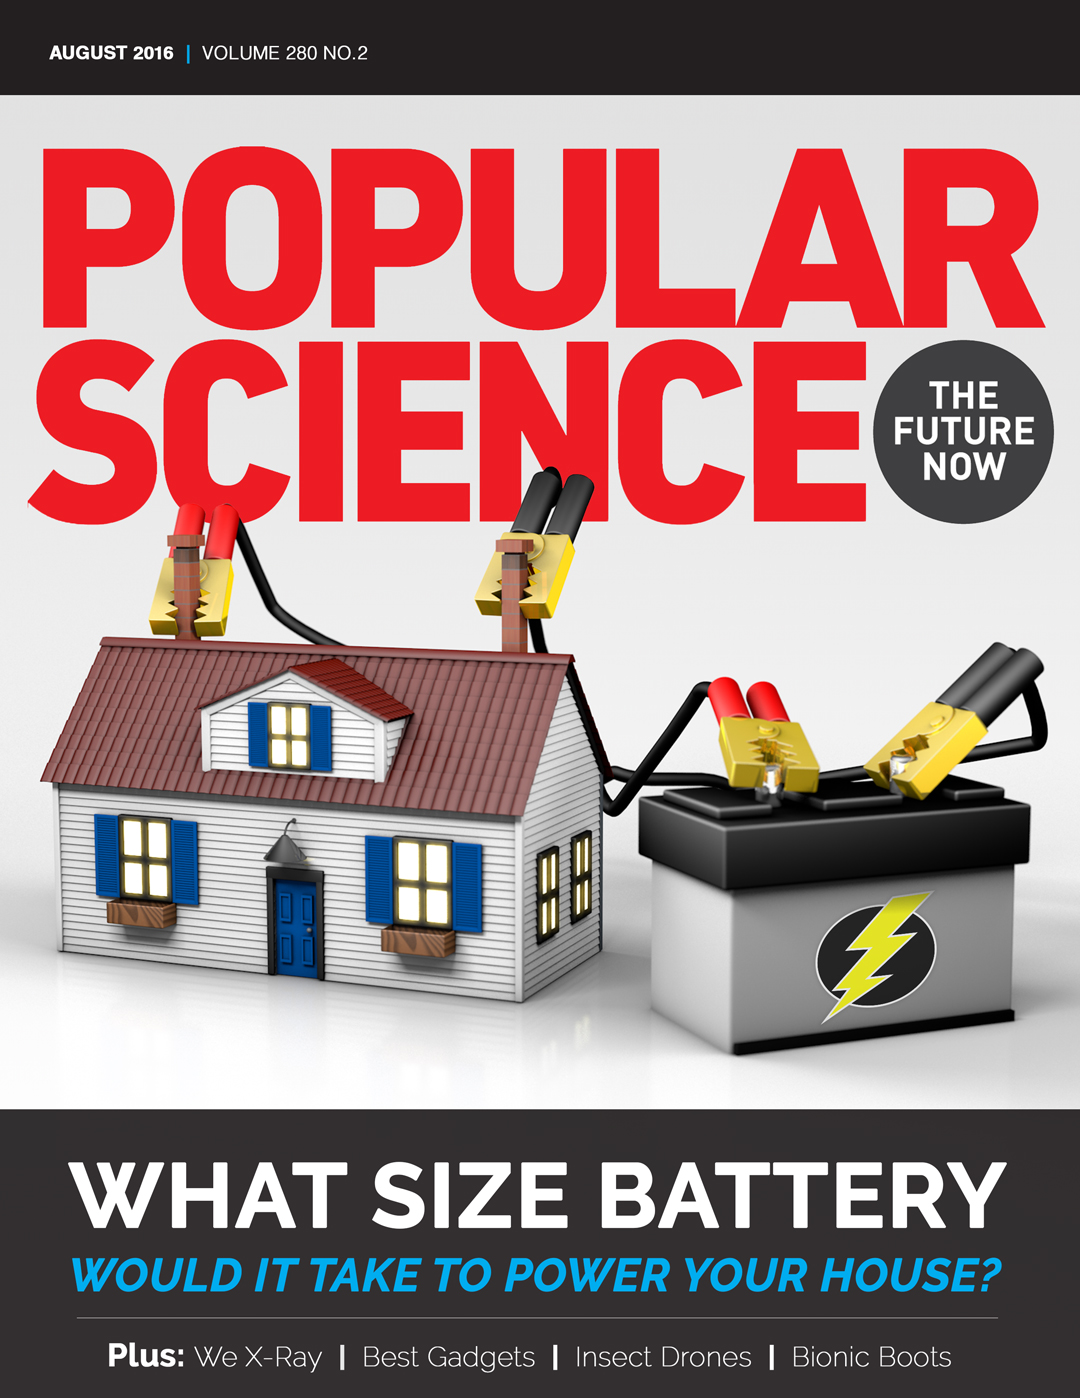 Magazine cover design with a 3D render of a house being powered by a car battery with jumper cables.